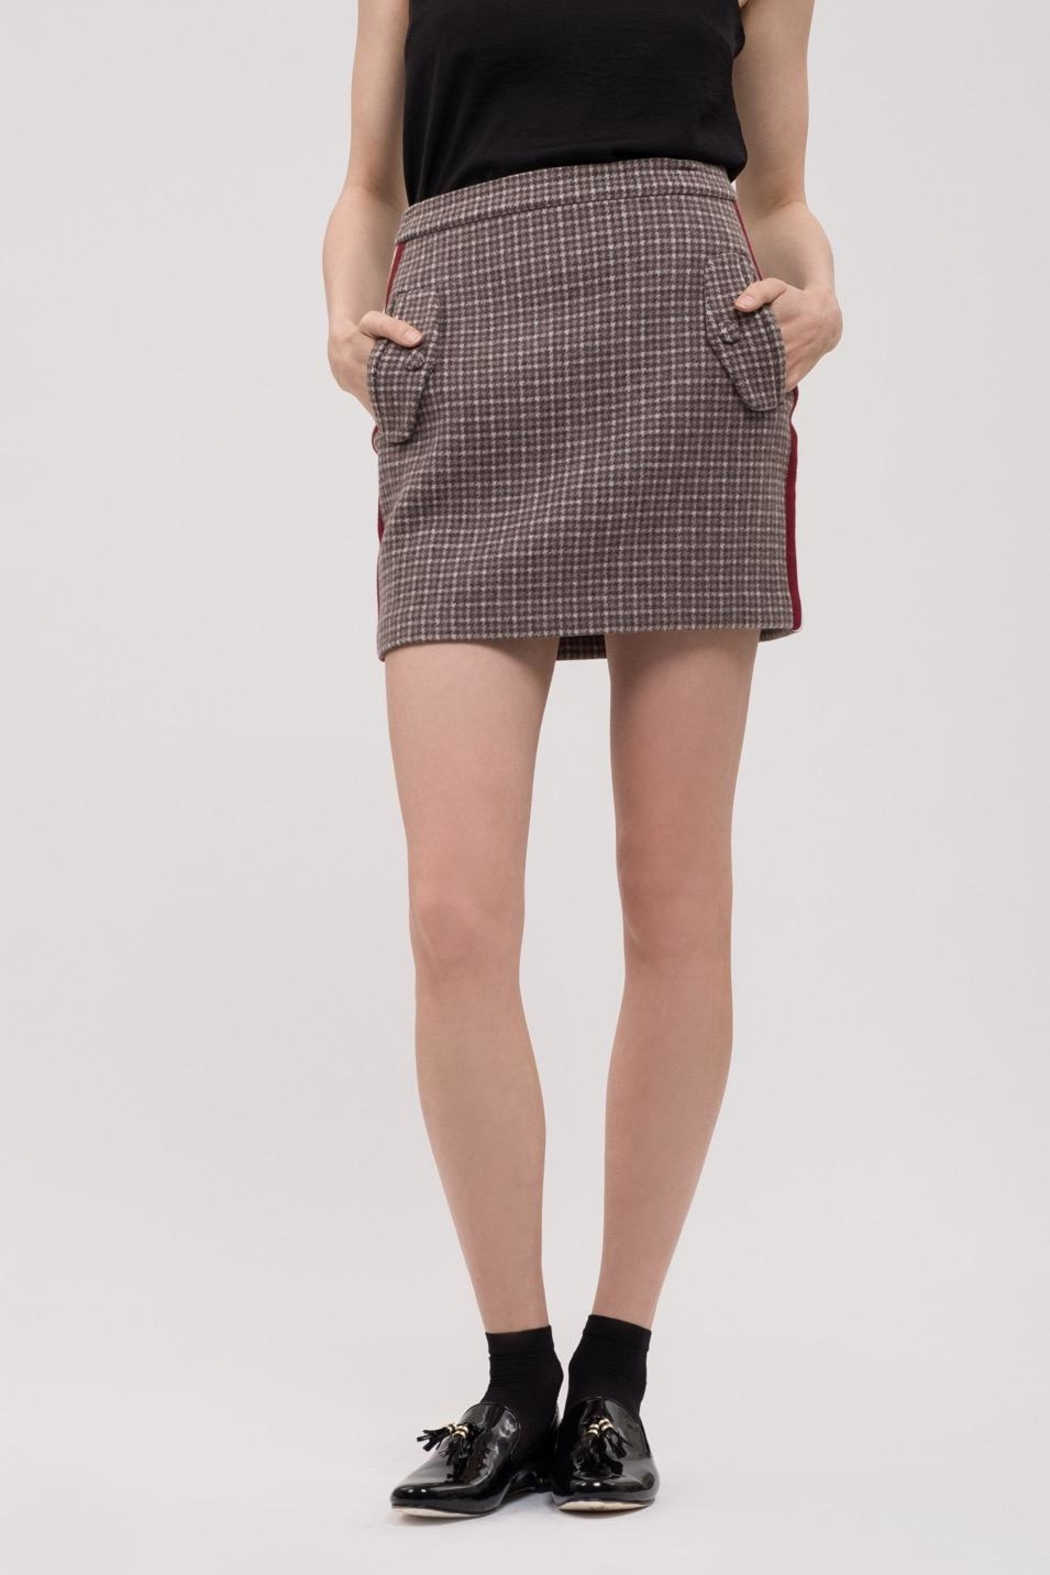 J.O.A. Plaid Mini Skirt - Front Full Image